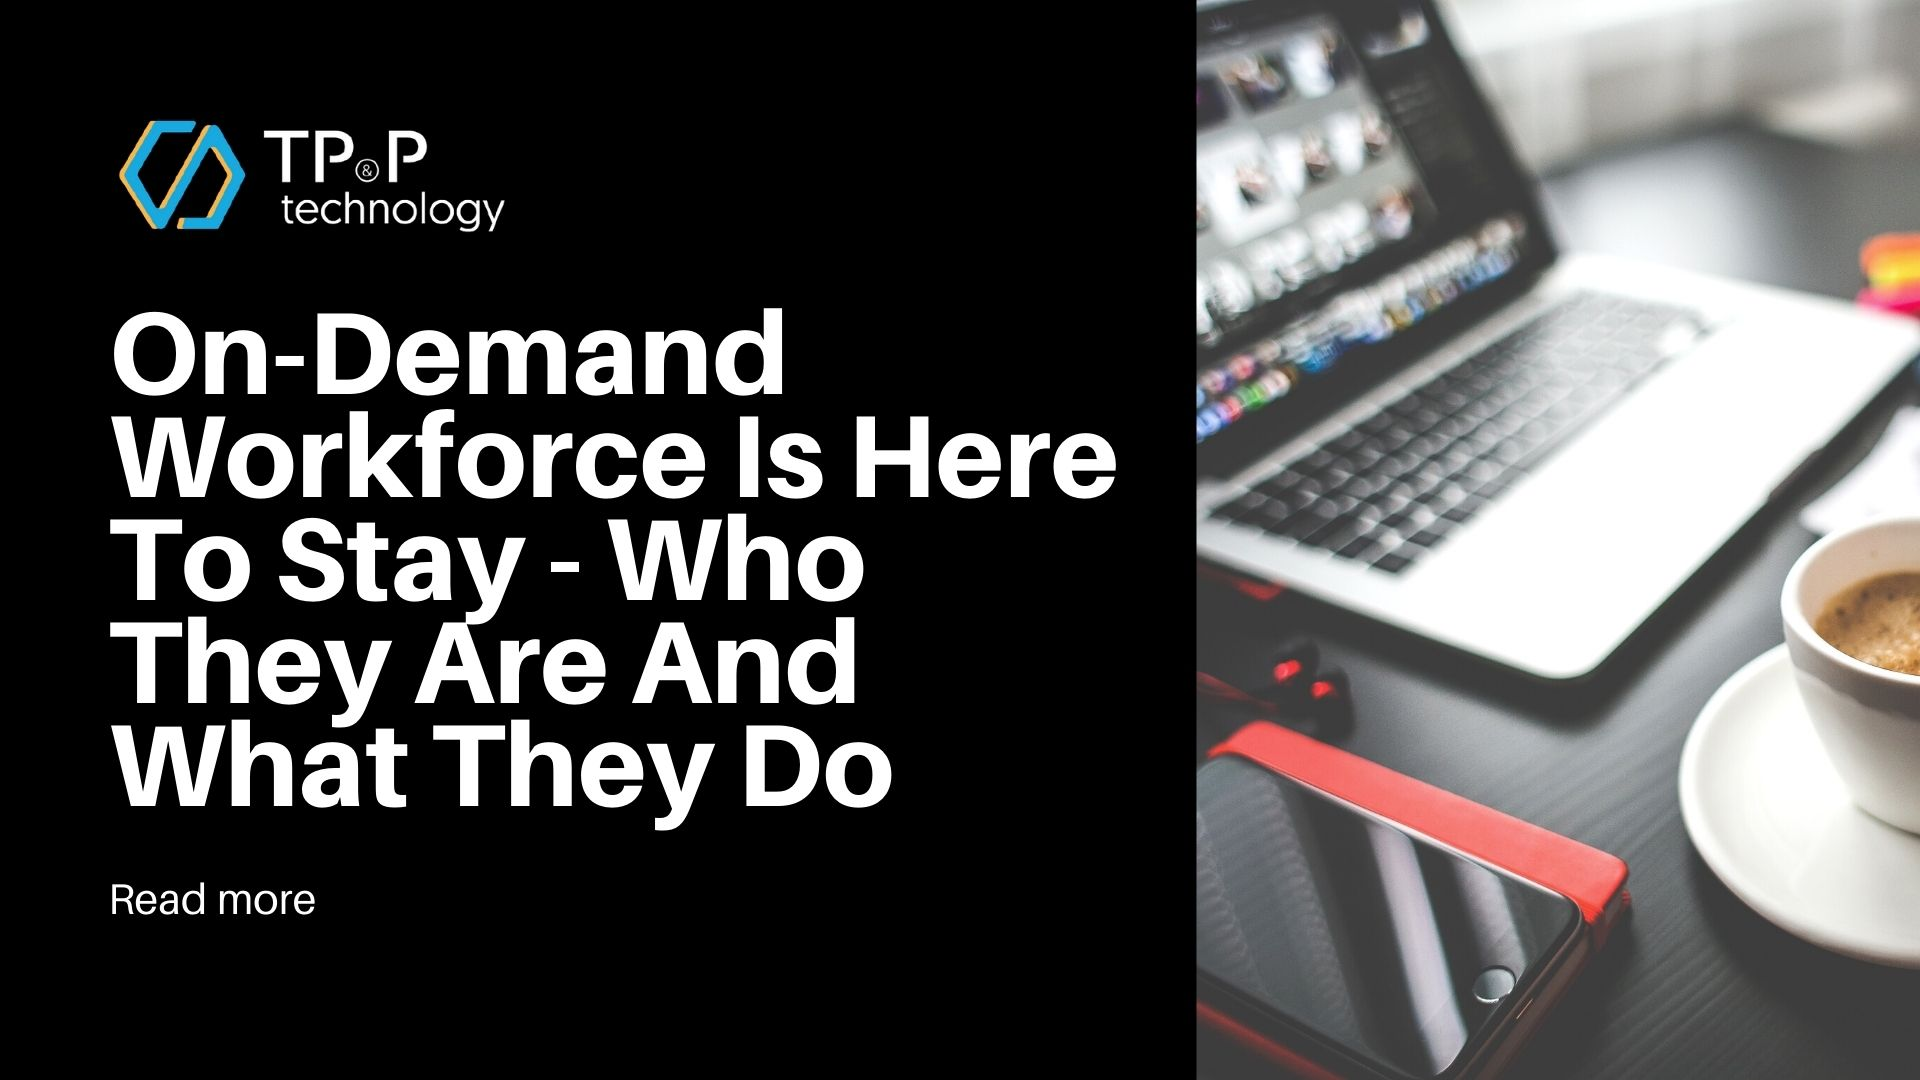 On-Demand Workforce Is Here To Stay - Who They Are And What They Do